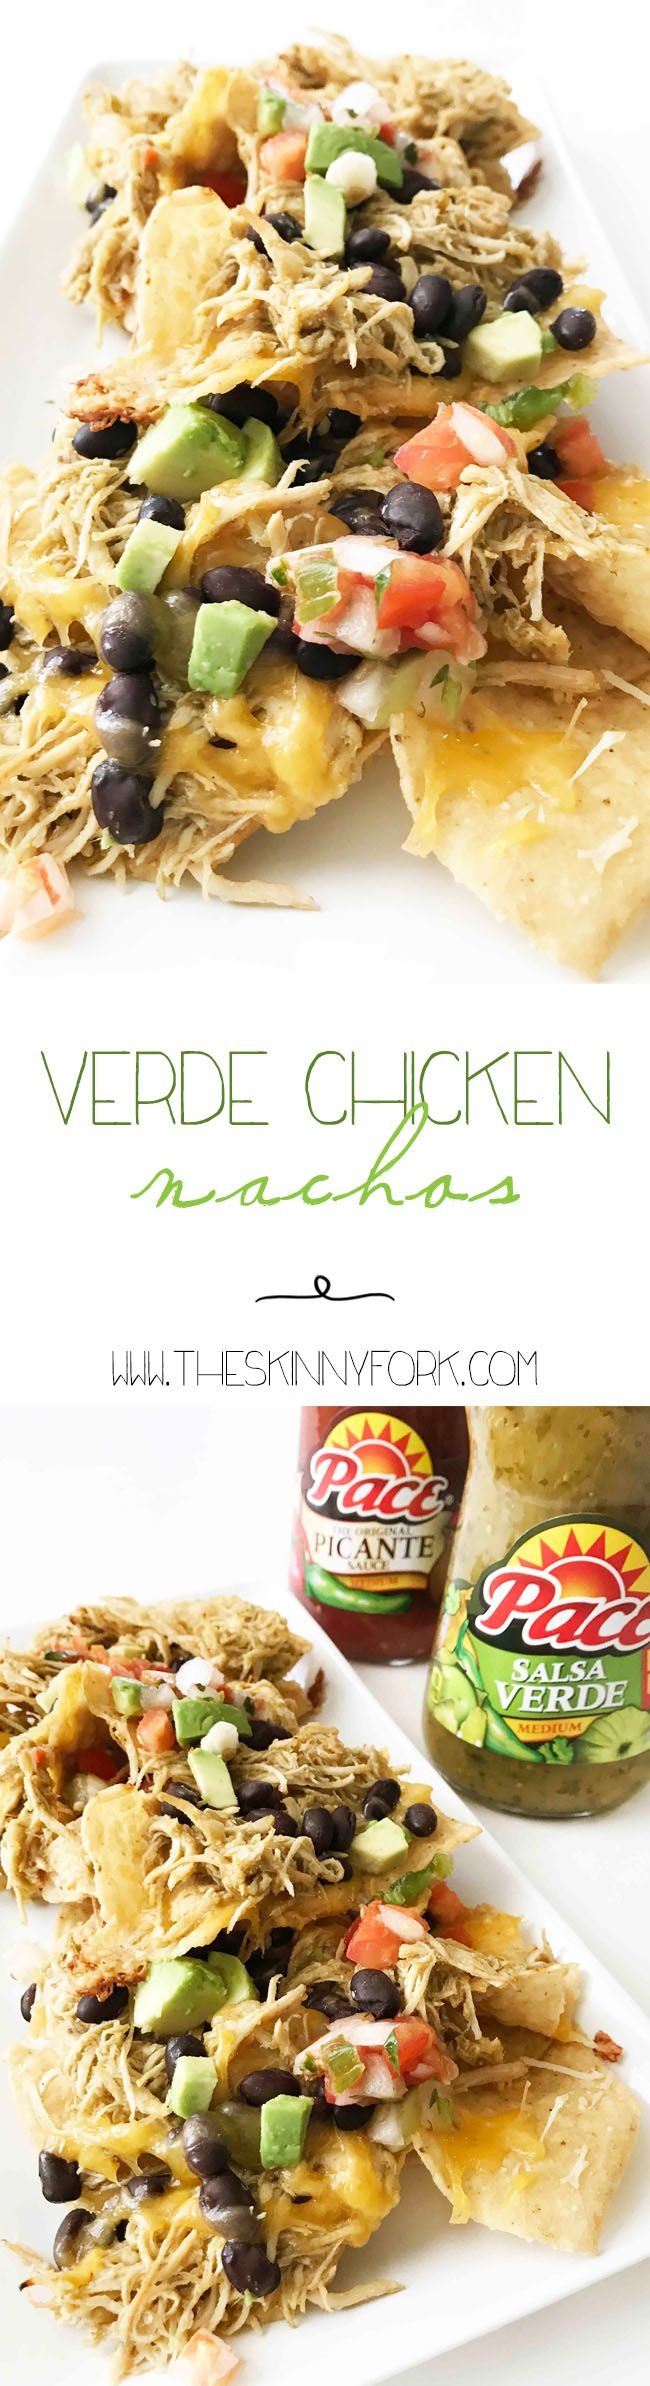 Football season means game day food! #MakeGameTimeSaucy with these Verde Chicken Nachos. They're quick, easy, and so good. Add them to your next game day spread and watch them disappear! #Ad TheSkinnyFork.com | Skinny & Healthy Recipes